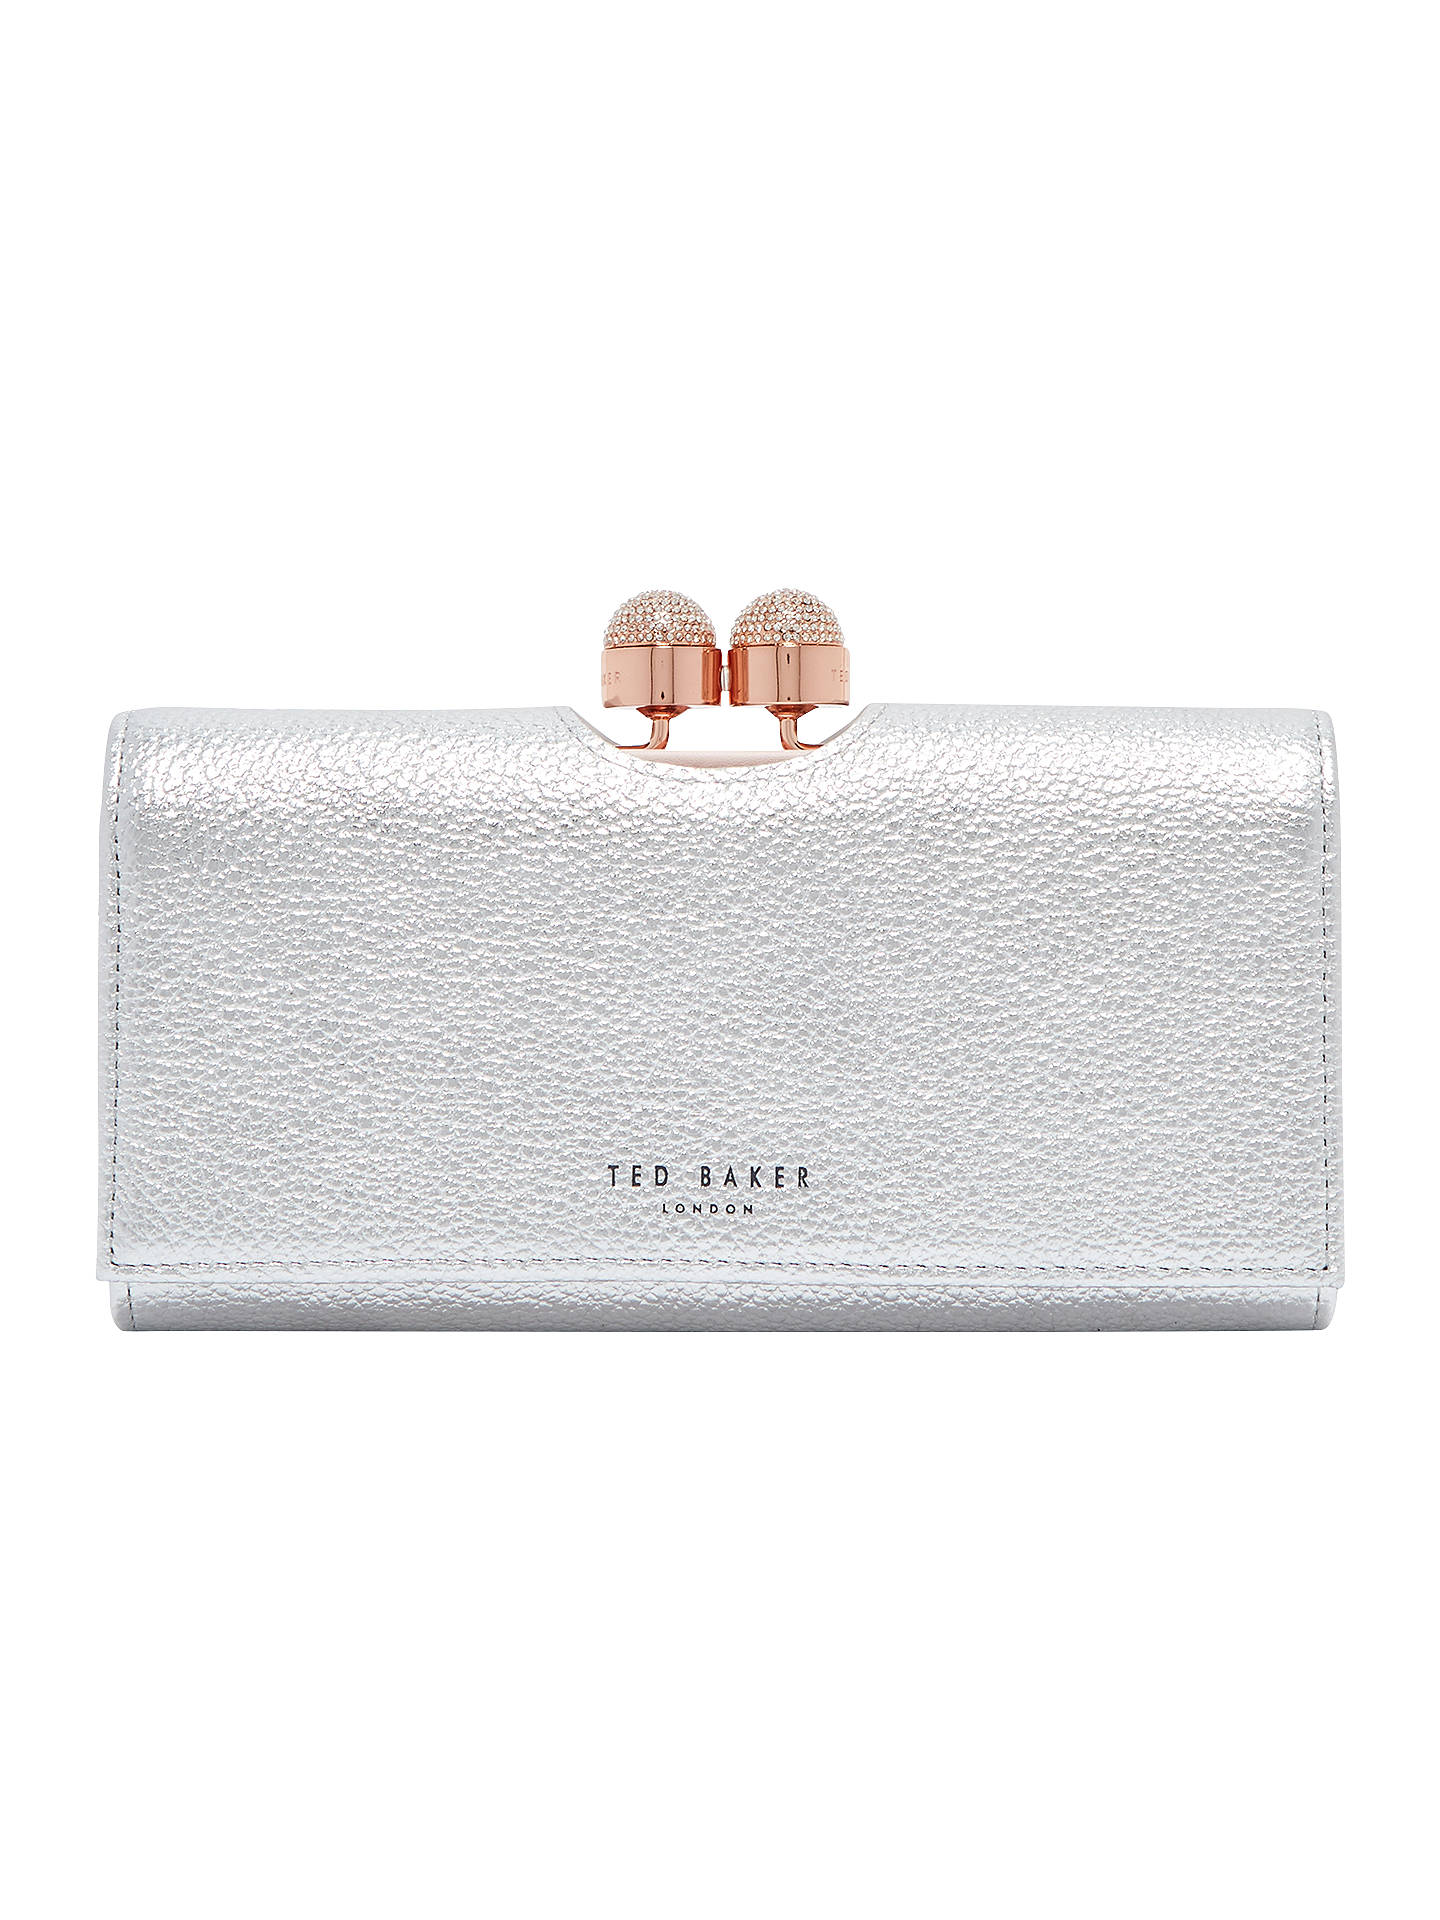 869500d765b3f Ted Baker Pamelia Leather Bobble Matinee Purse at John Lewis   Partners